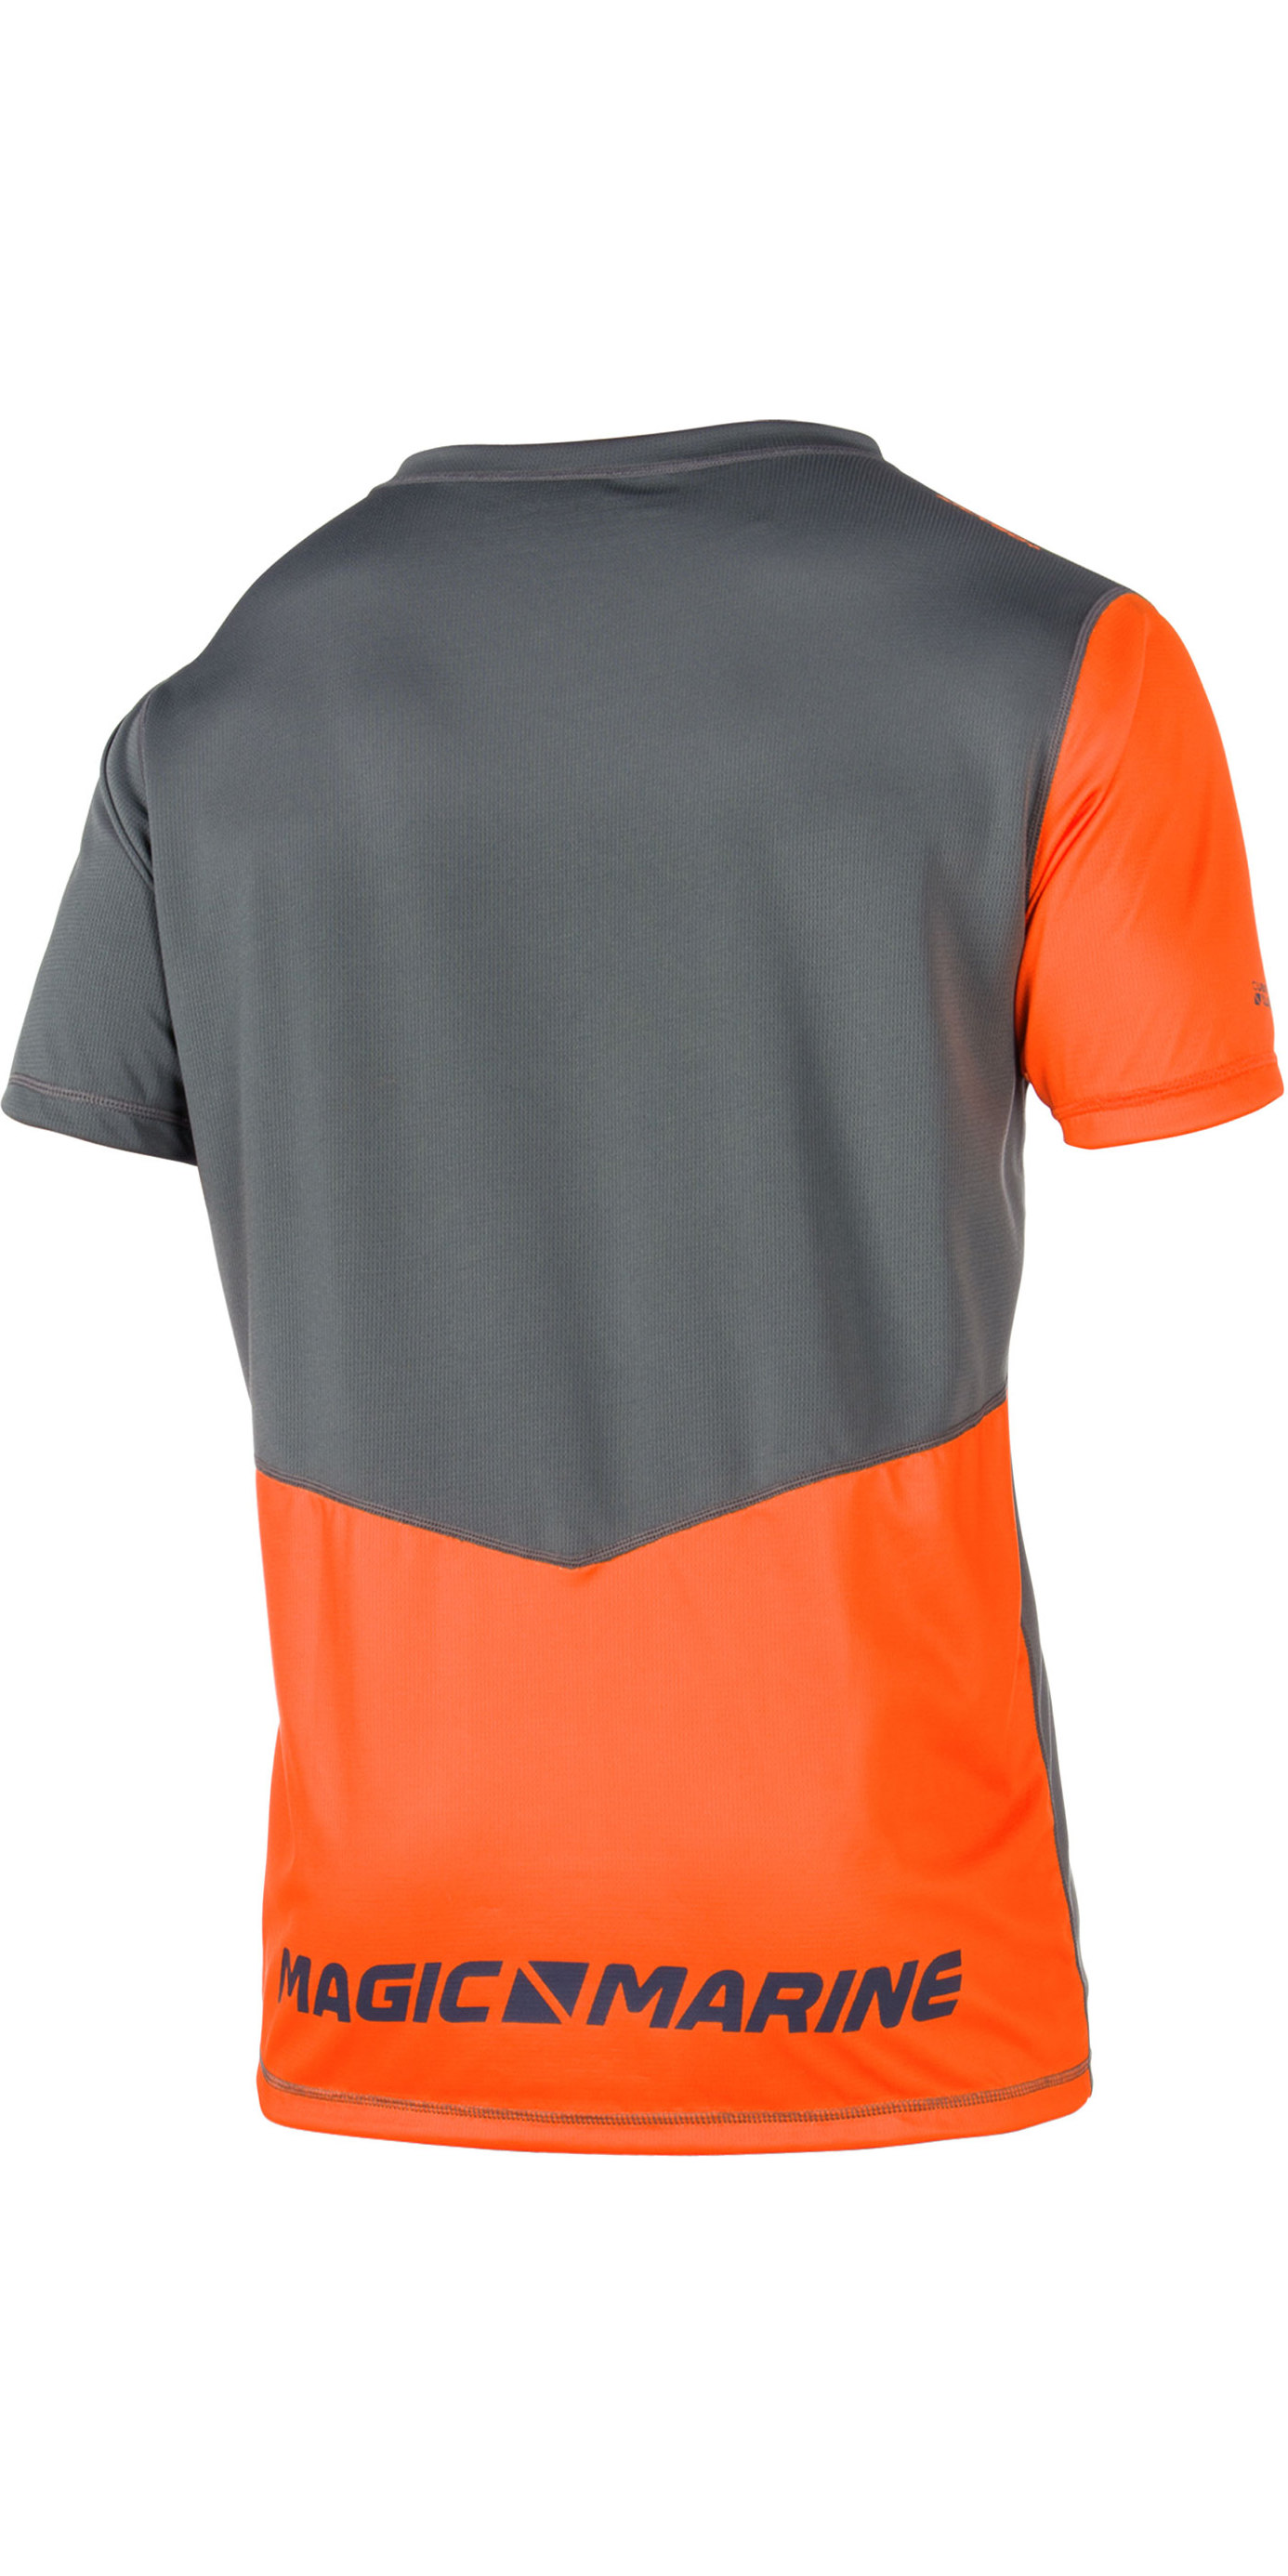 2020 Magic Marine Mens Cube Quick Dry Short Sleeve Top Orange 180062